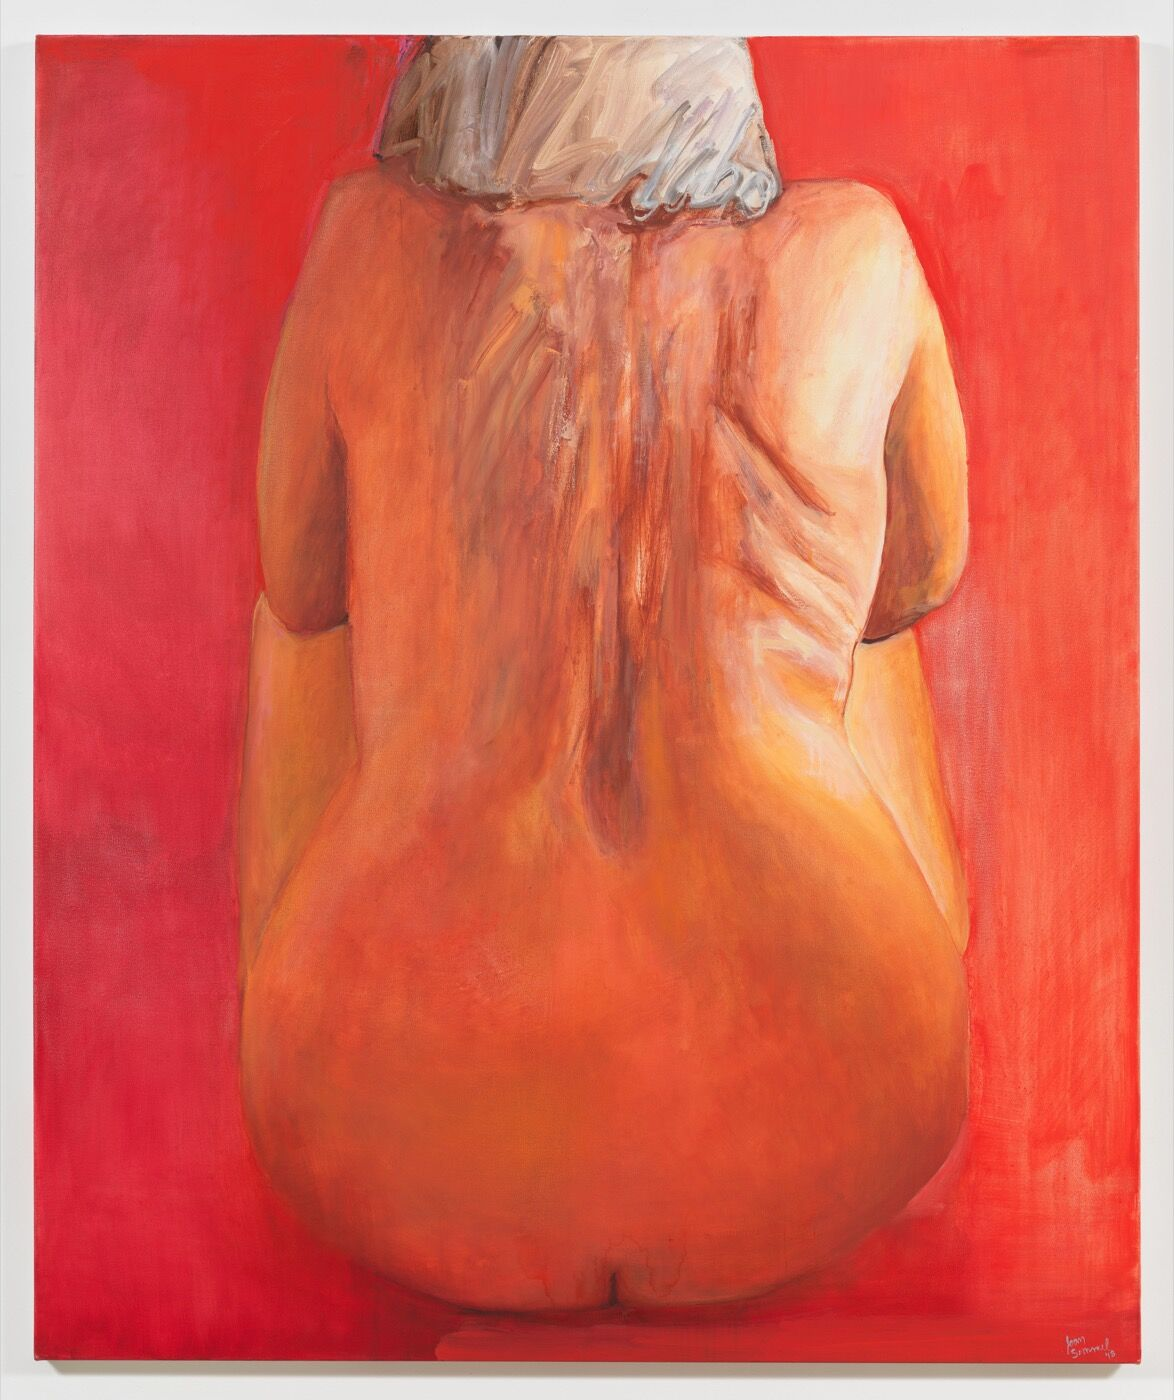 Joan Semmel, Seated in Red, 2018. © Joan Semmel/Artists Rights Society (ARS), New York. Courtesy Alexander Gray Associates, New York.